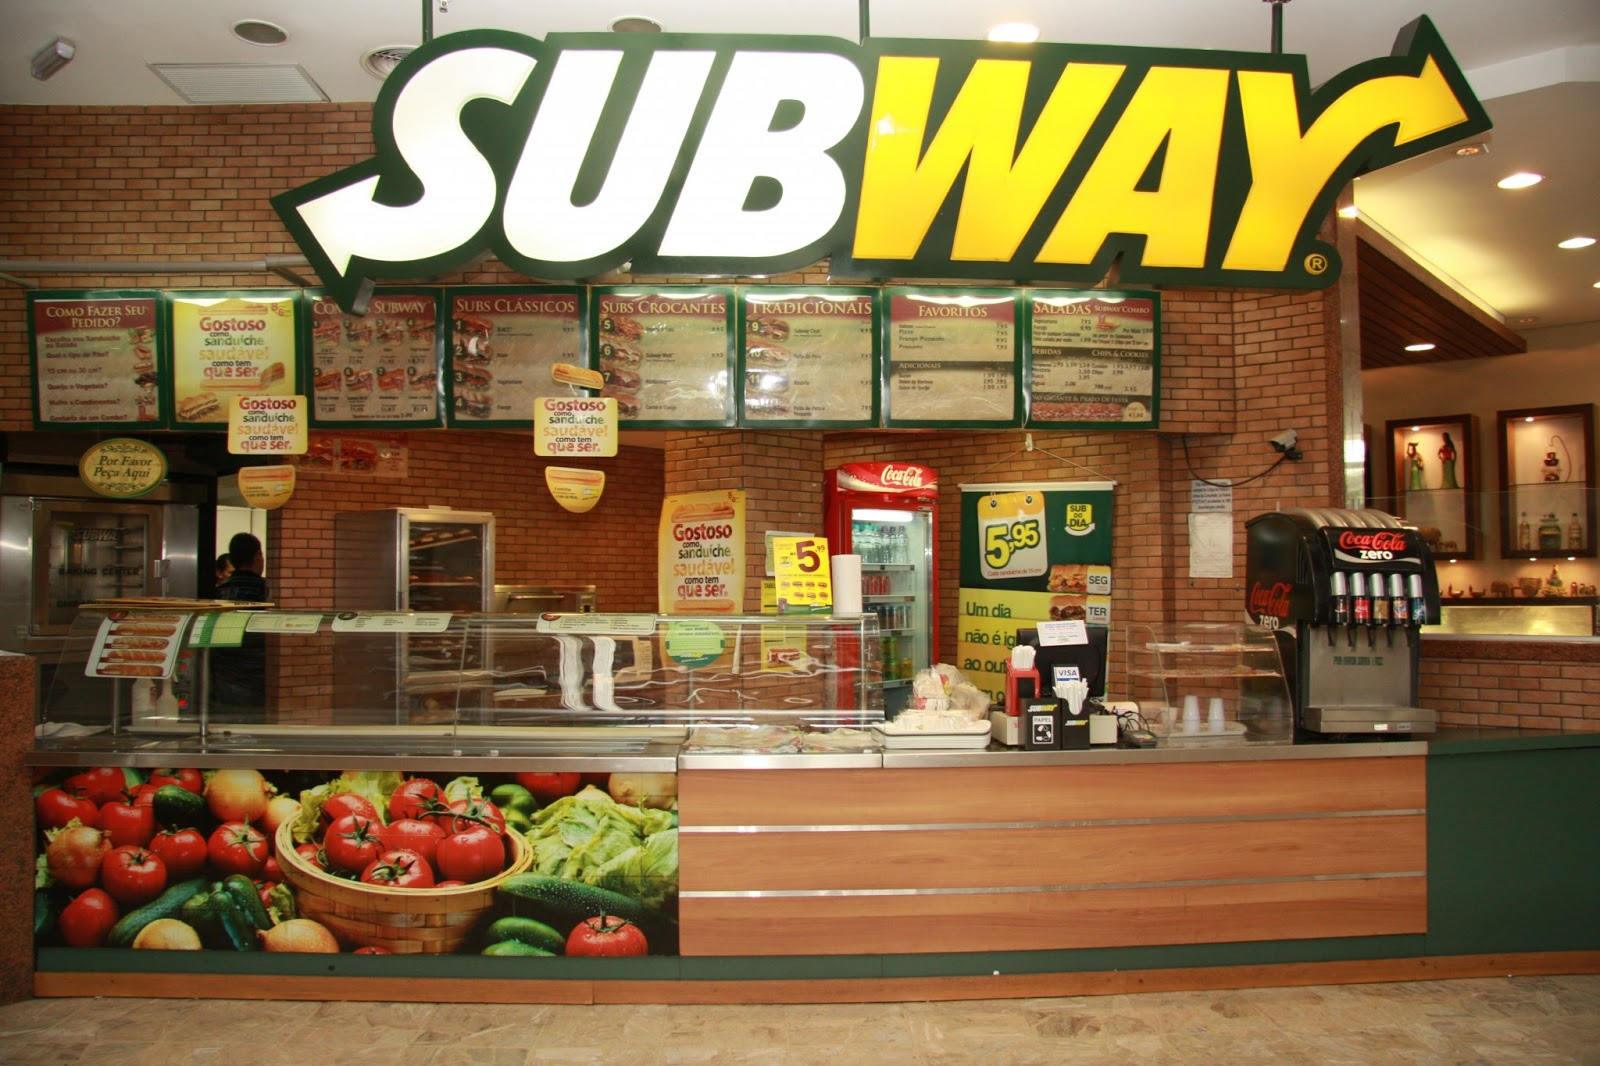 Subway is coming to Formby Subway